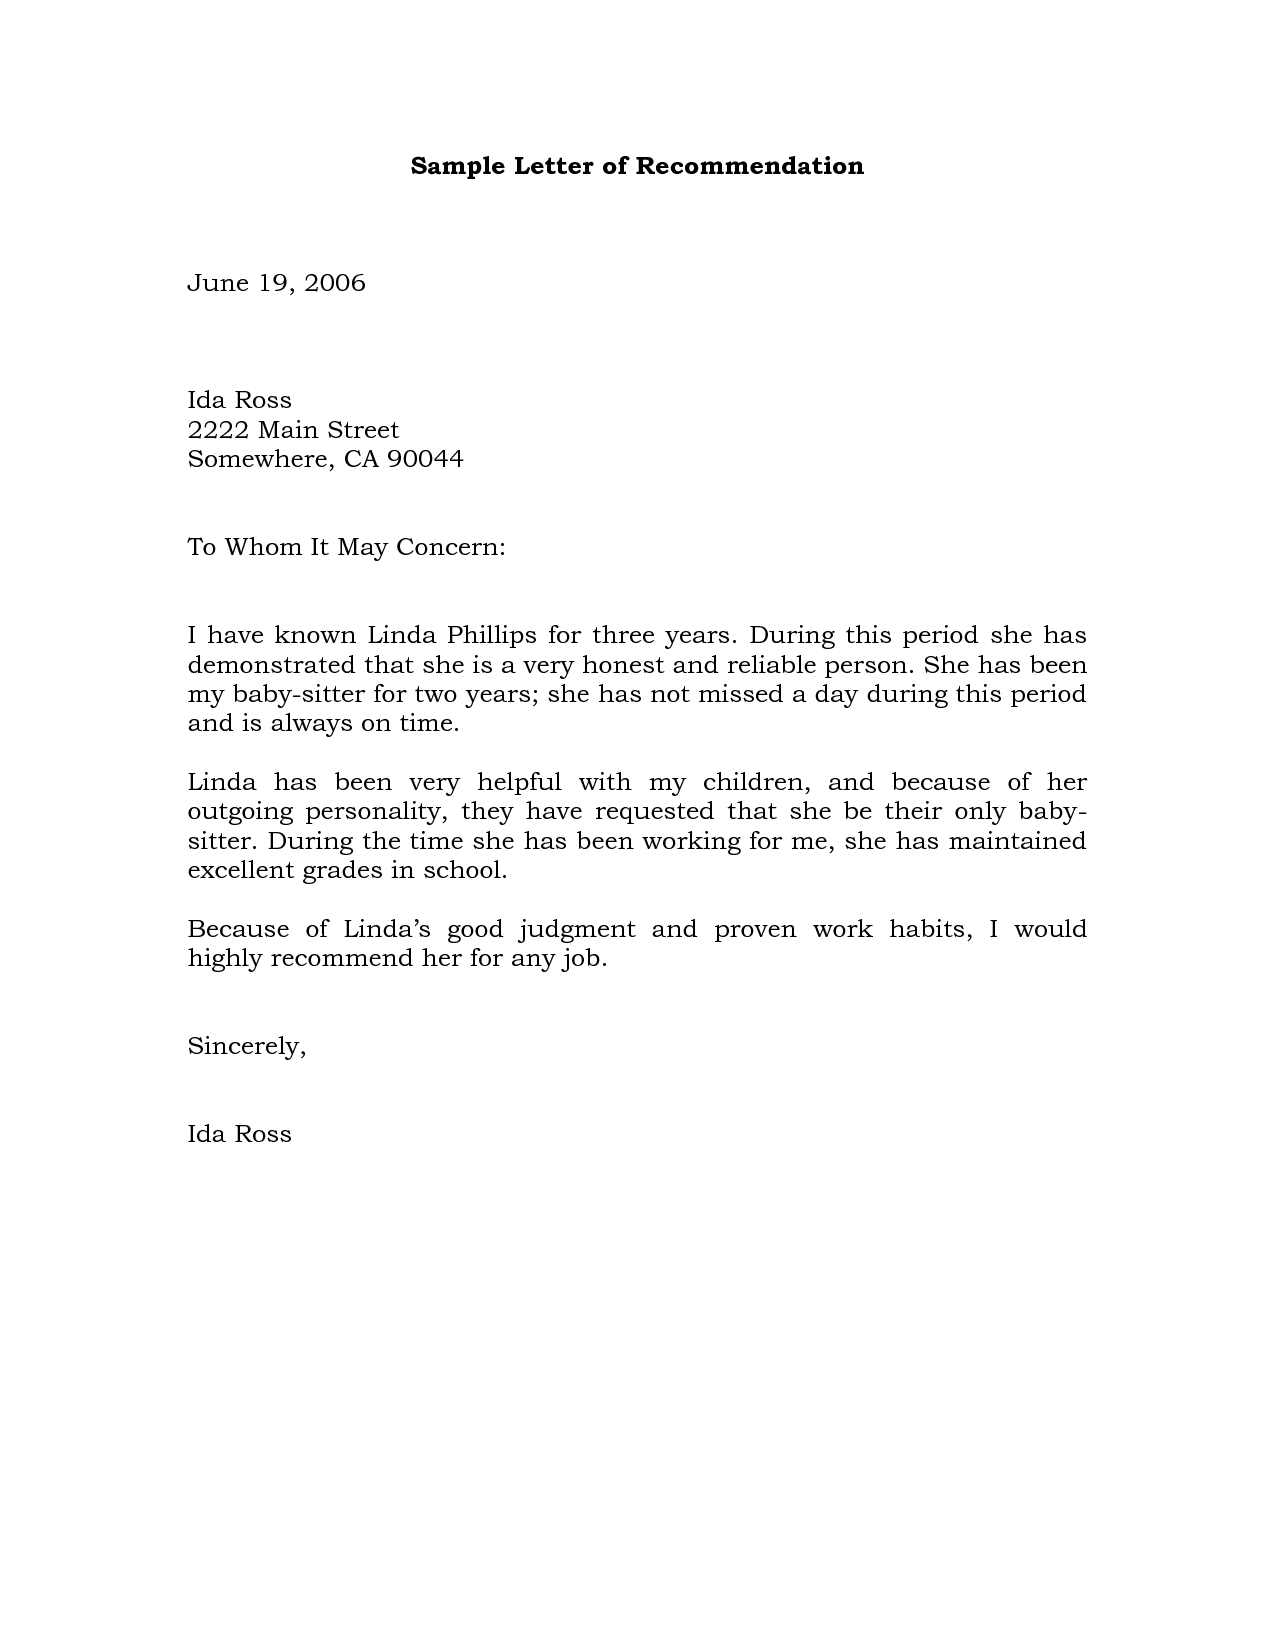 Housing Reference Letter Template - Sample Re Mendation Letter Example Projects to Try